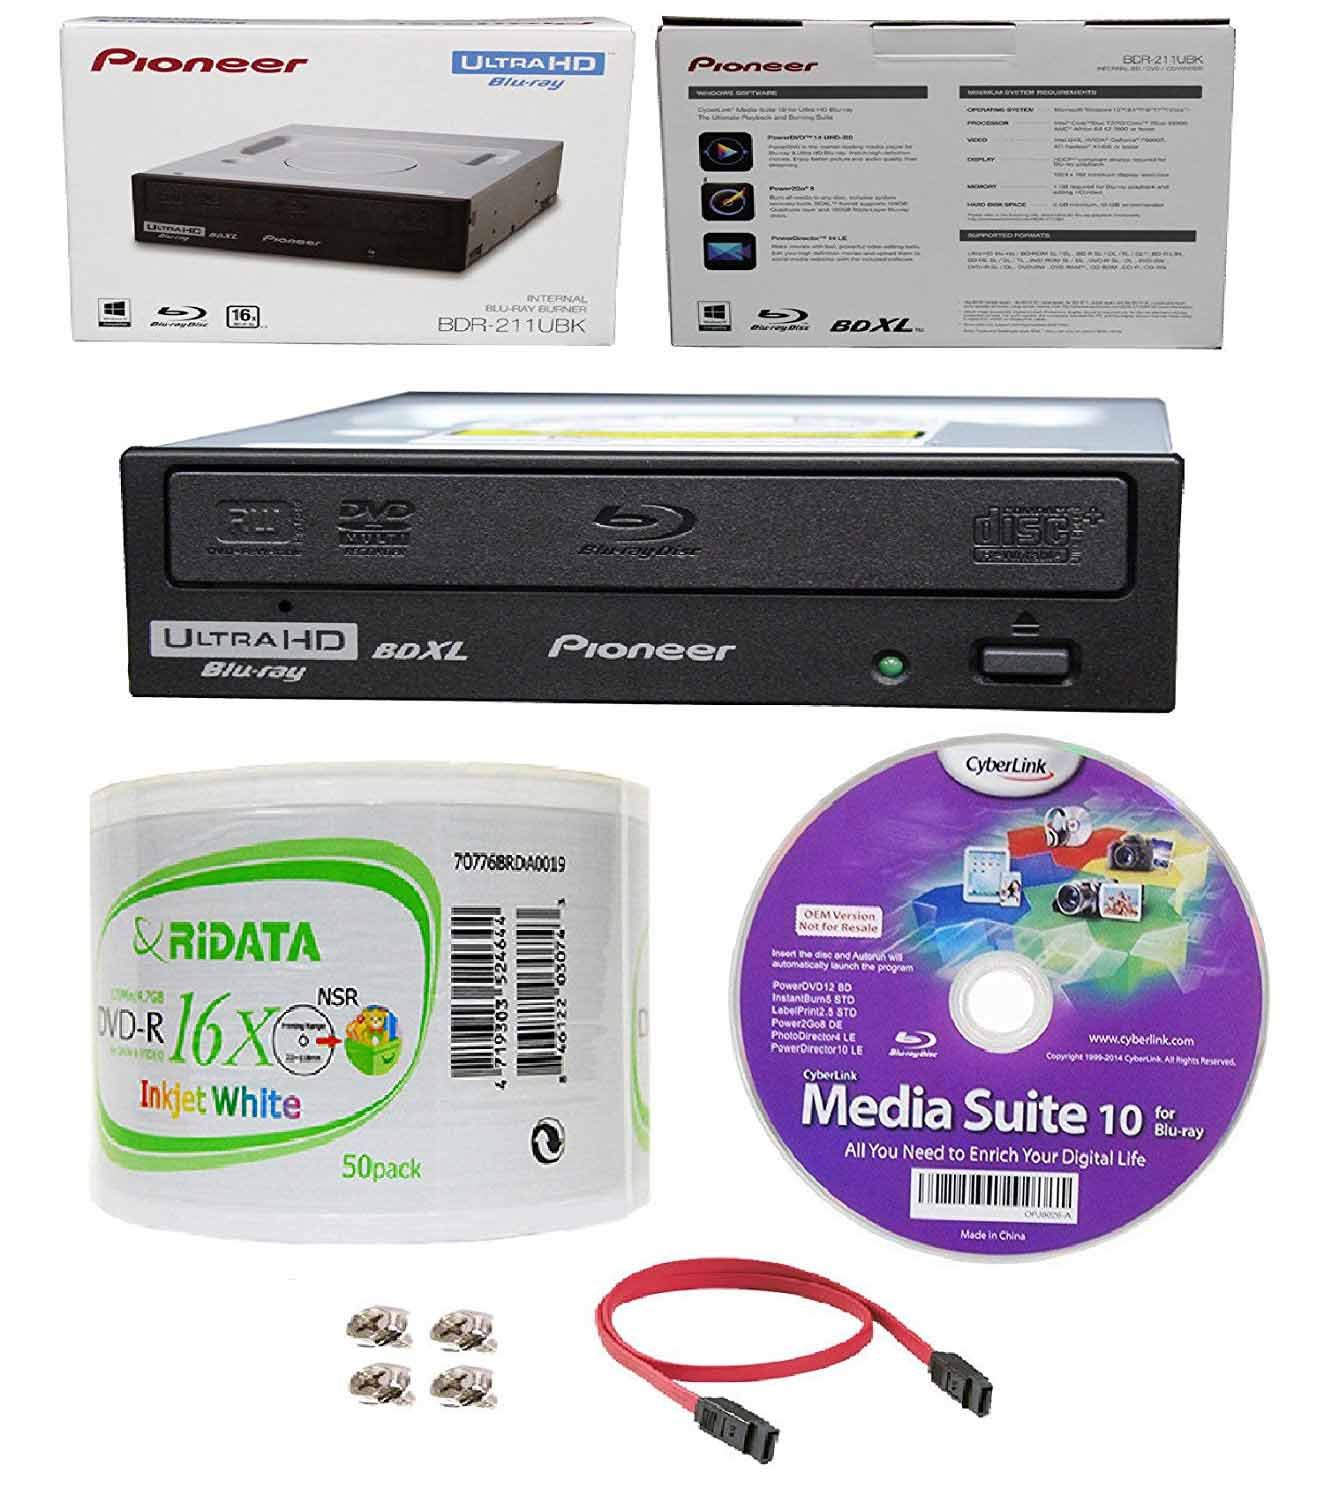 Pioneer 16x BDR-211UBK Internal Ultra HD Blu-ray BDXL Burner, Cyberlink Software and Cable Accessories Bundle with 50pk DVD-R RiDATA White Inkjet Printable